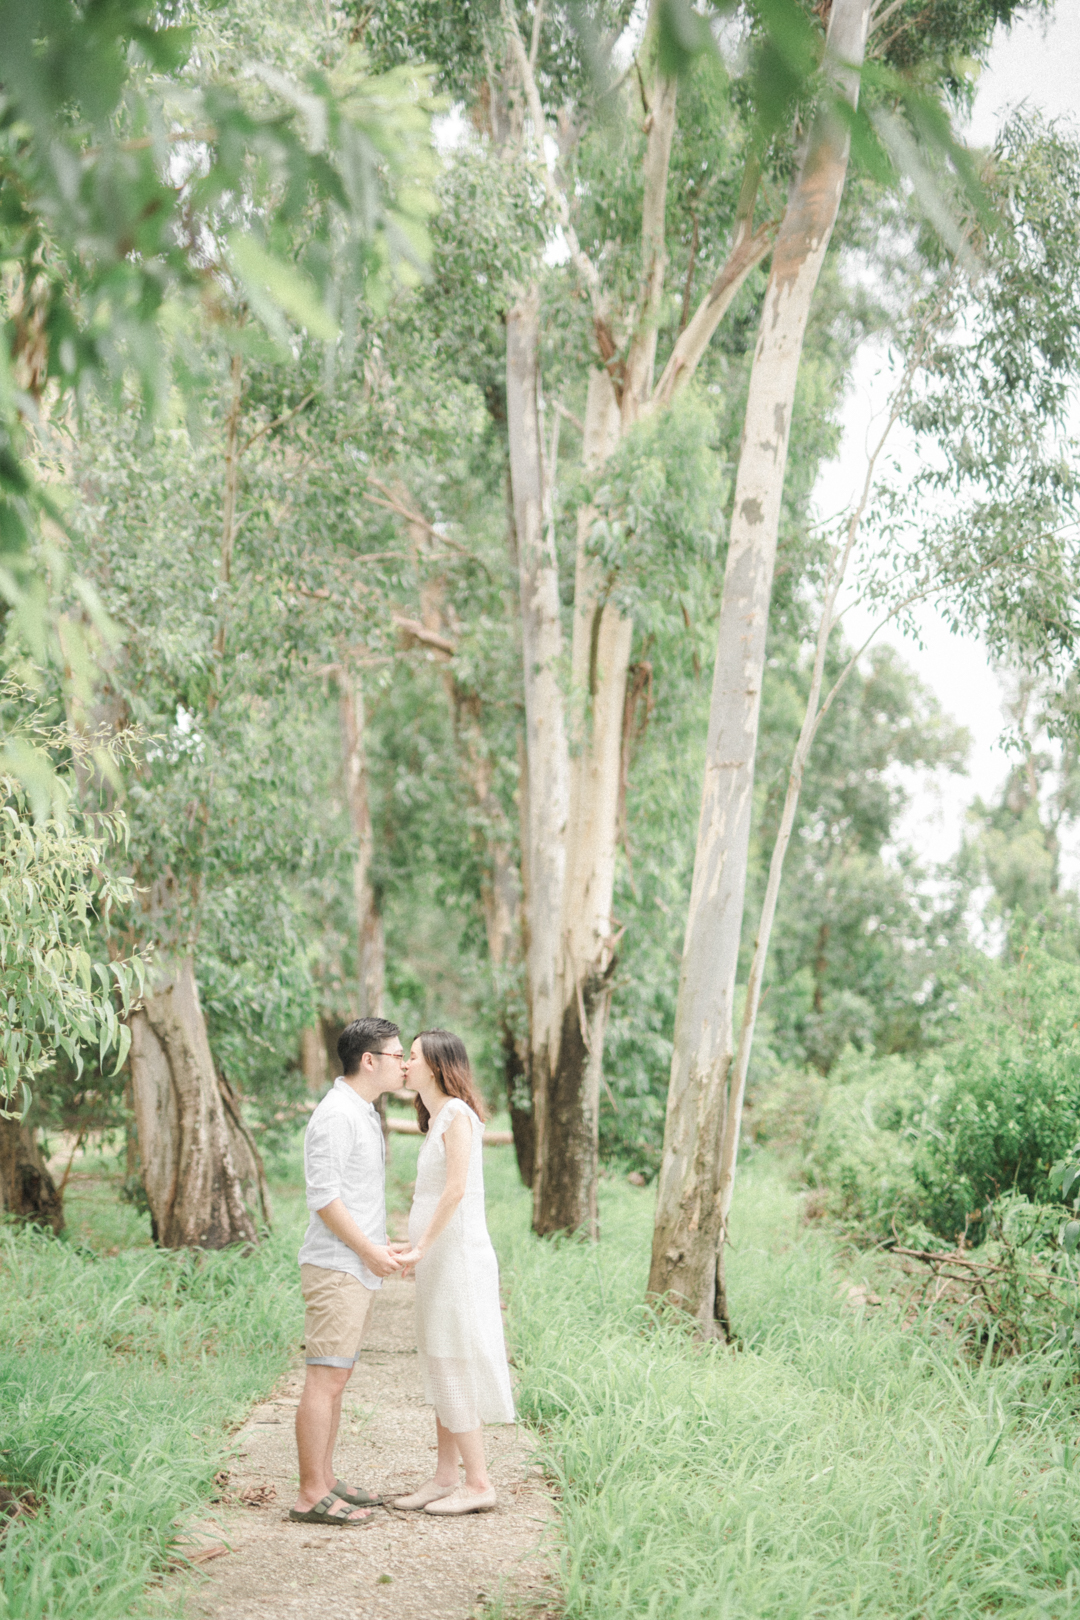 A-Forest-Maternity-Session_00022.jpg